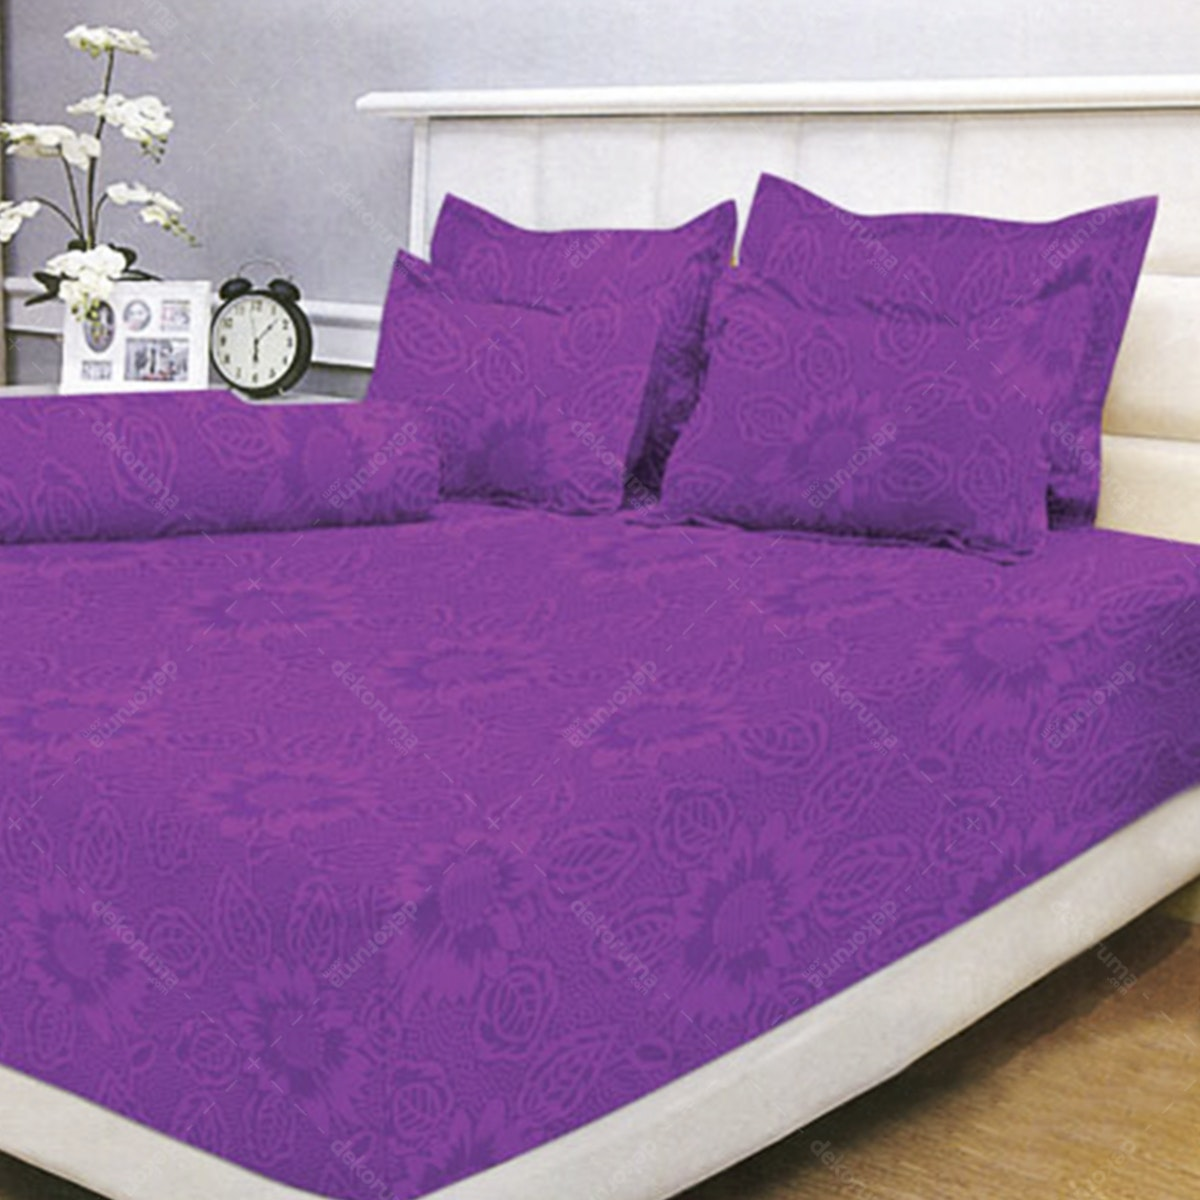 Vallery Quincy Bed Cover Light Purple BC 245x225cm